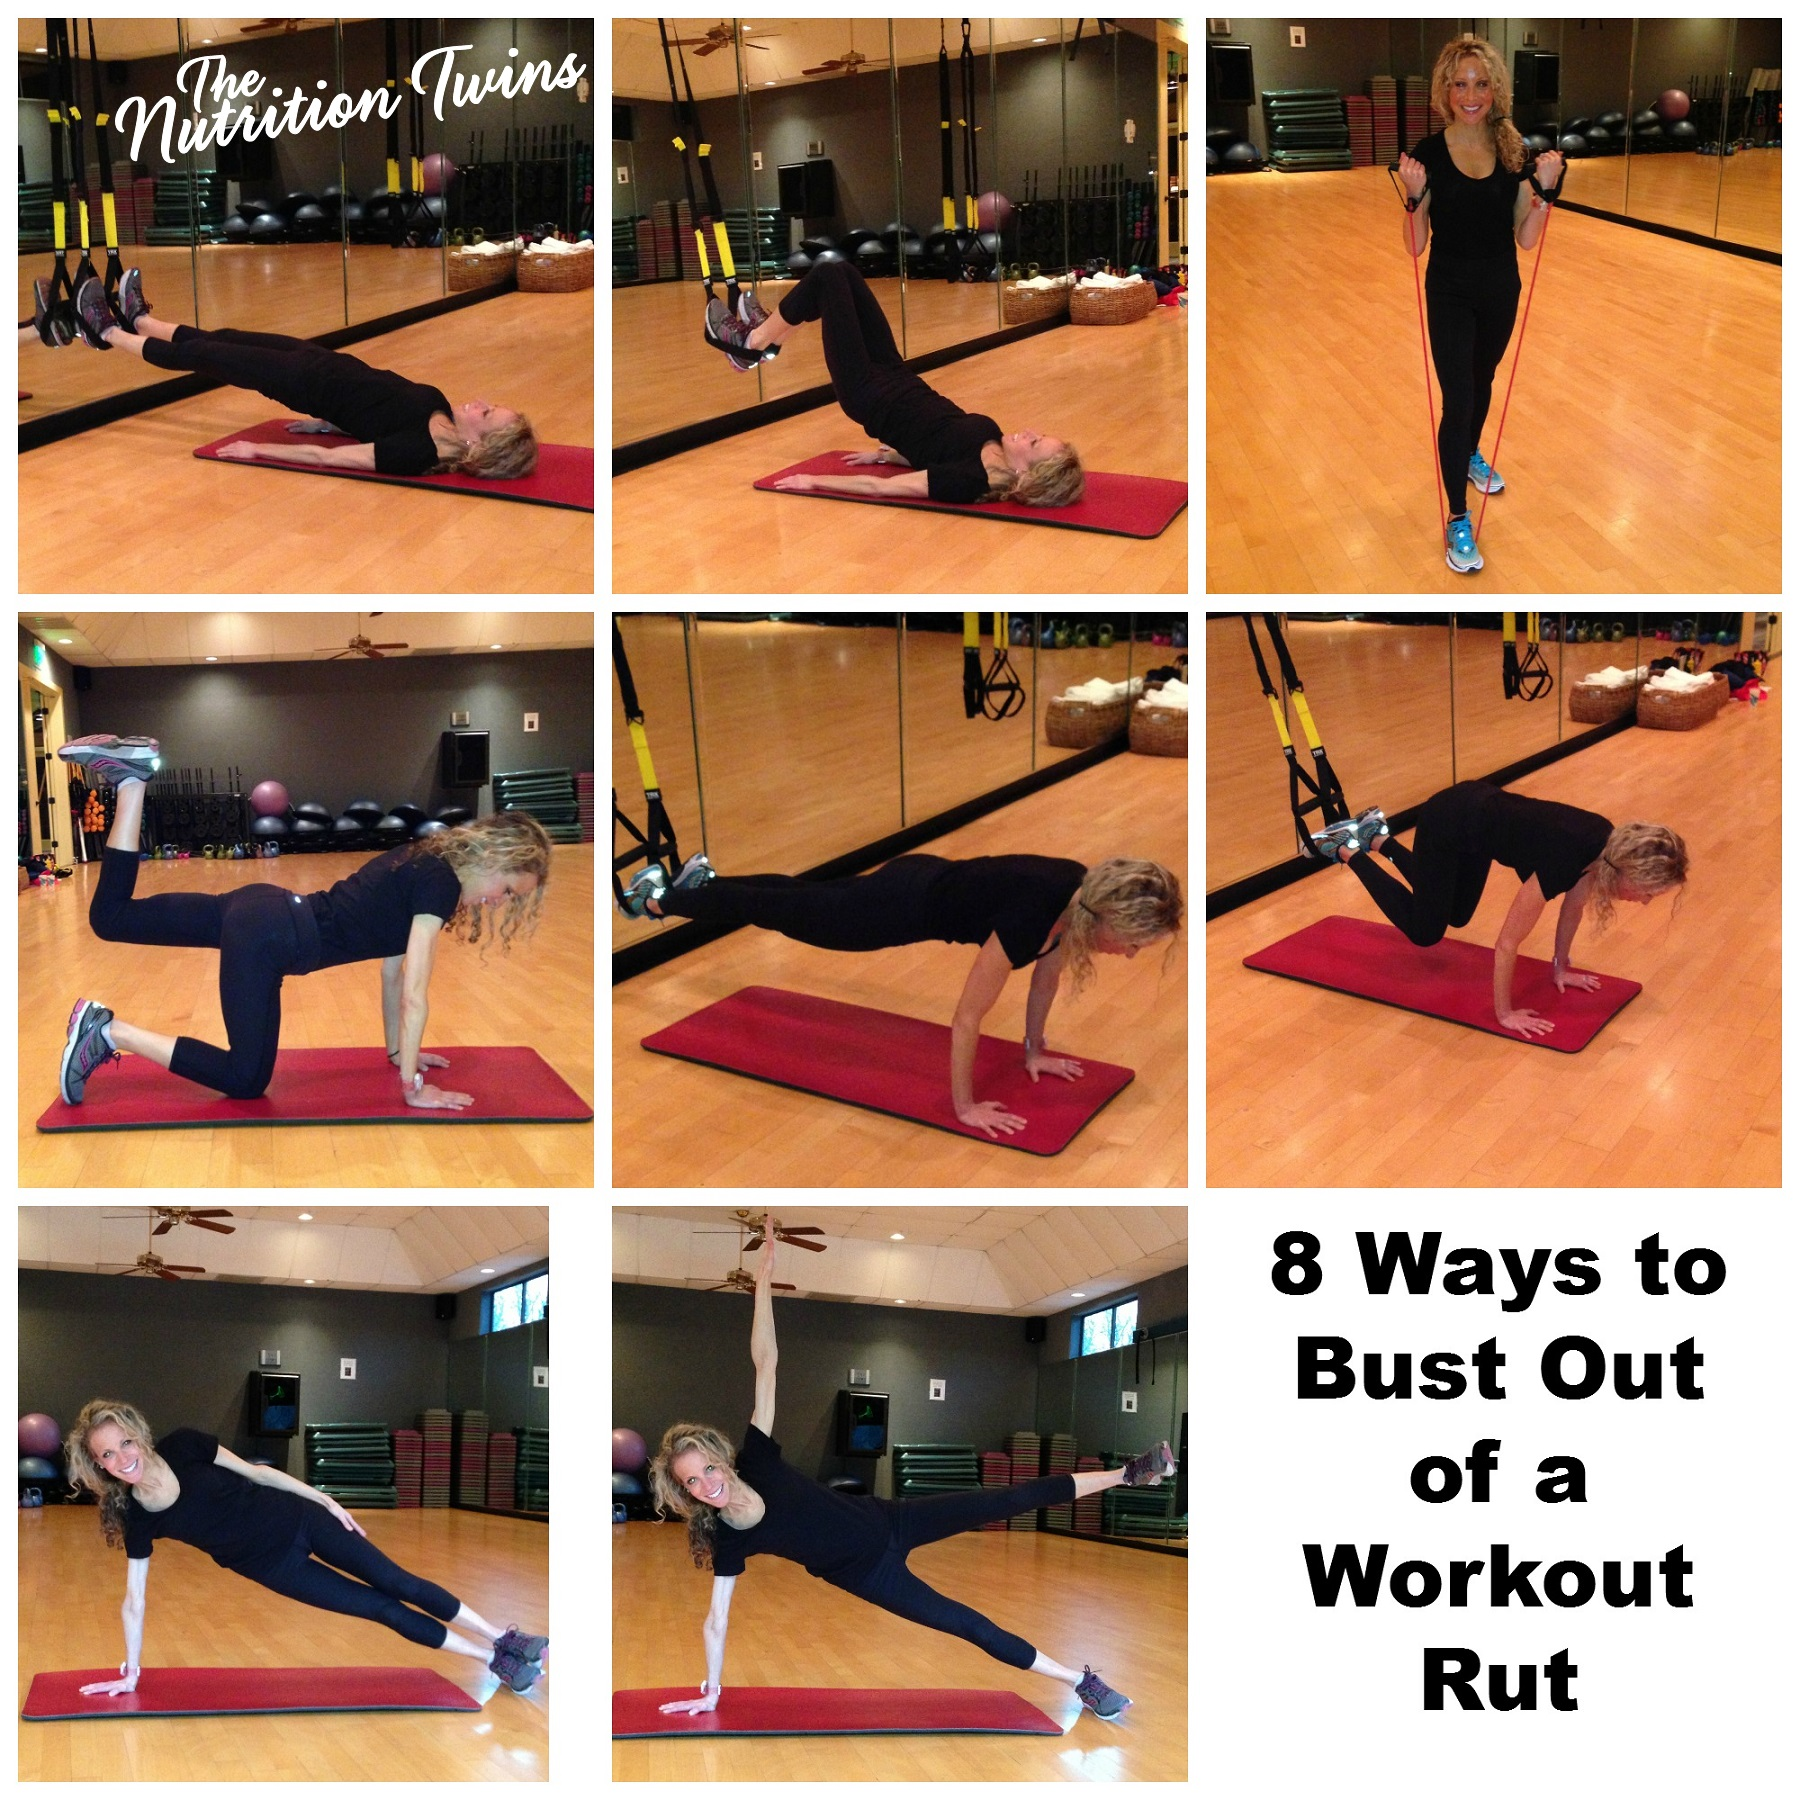 8_Ways_To_Bust_Out_Of_A_Workout_Rut